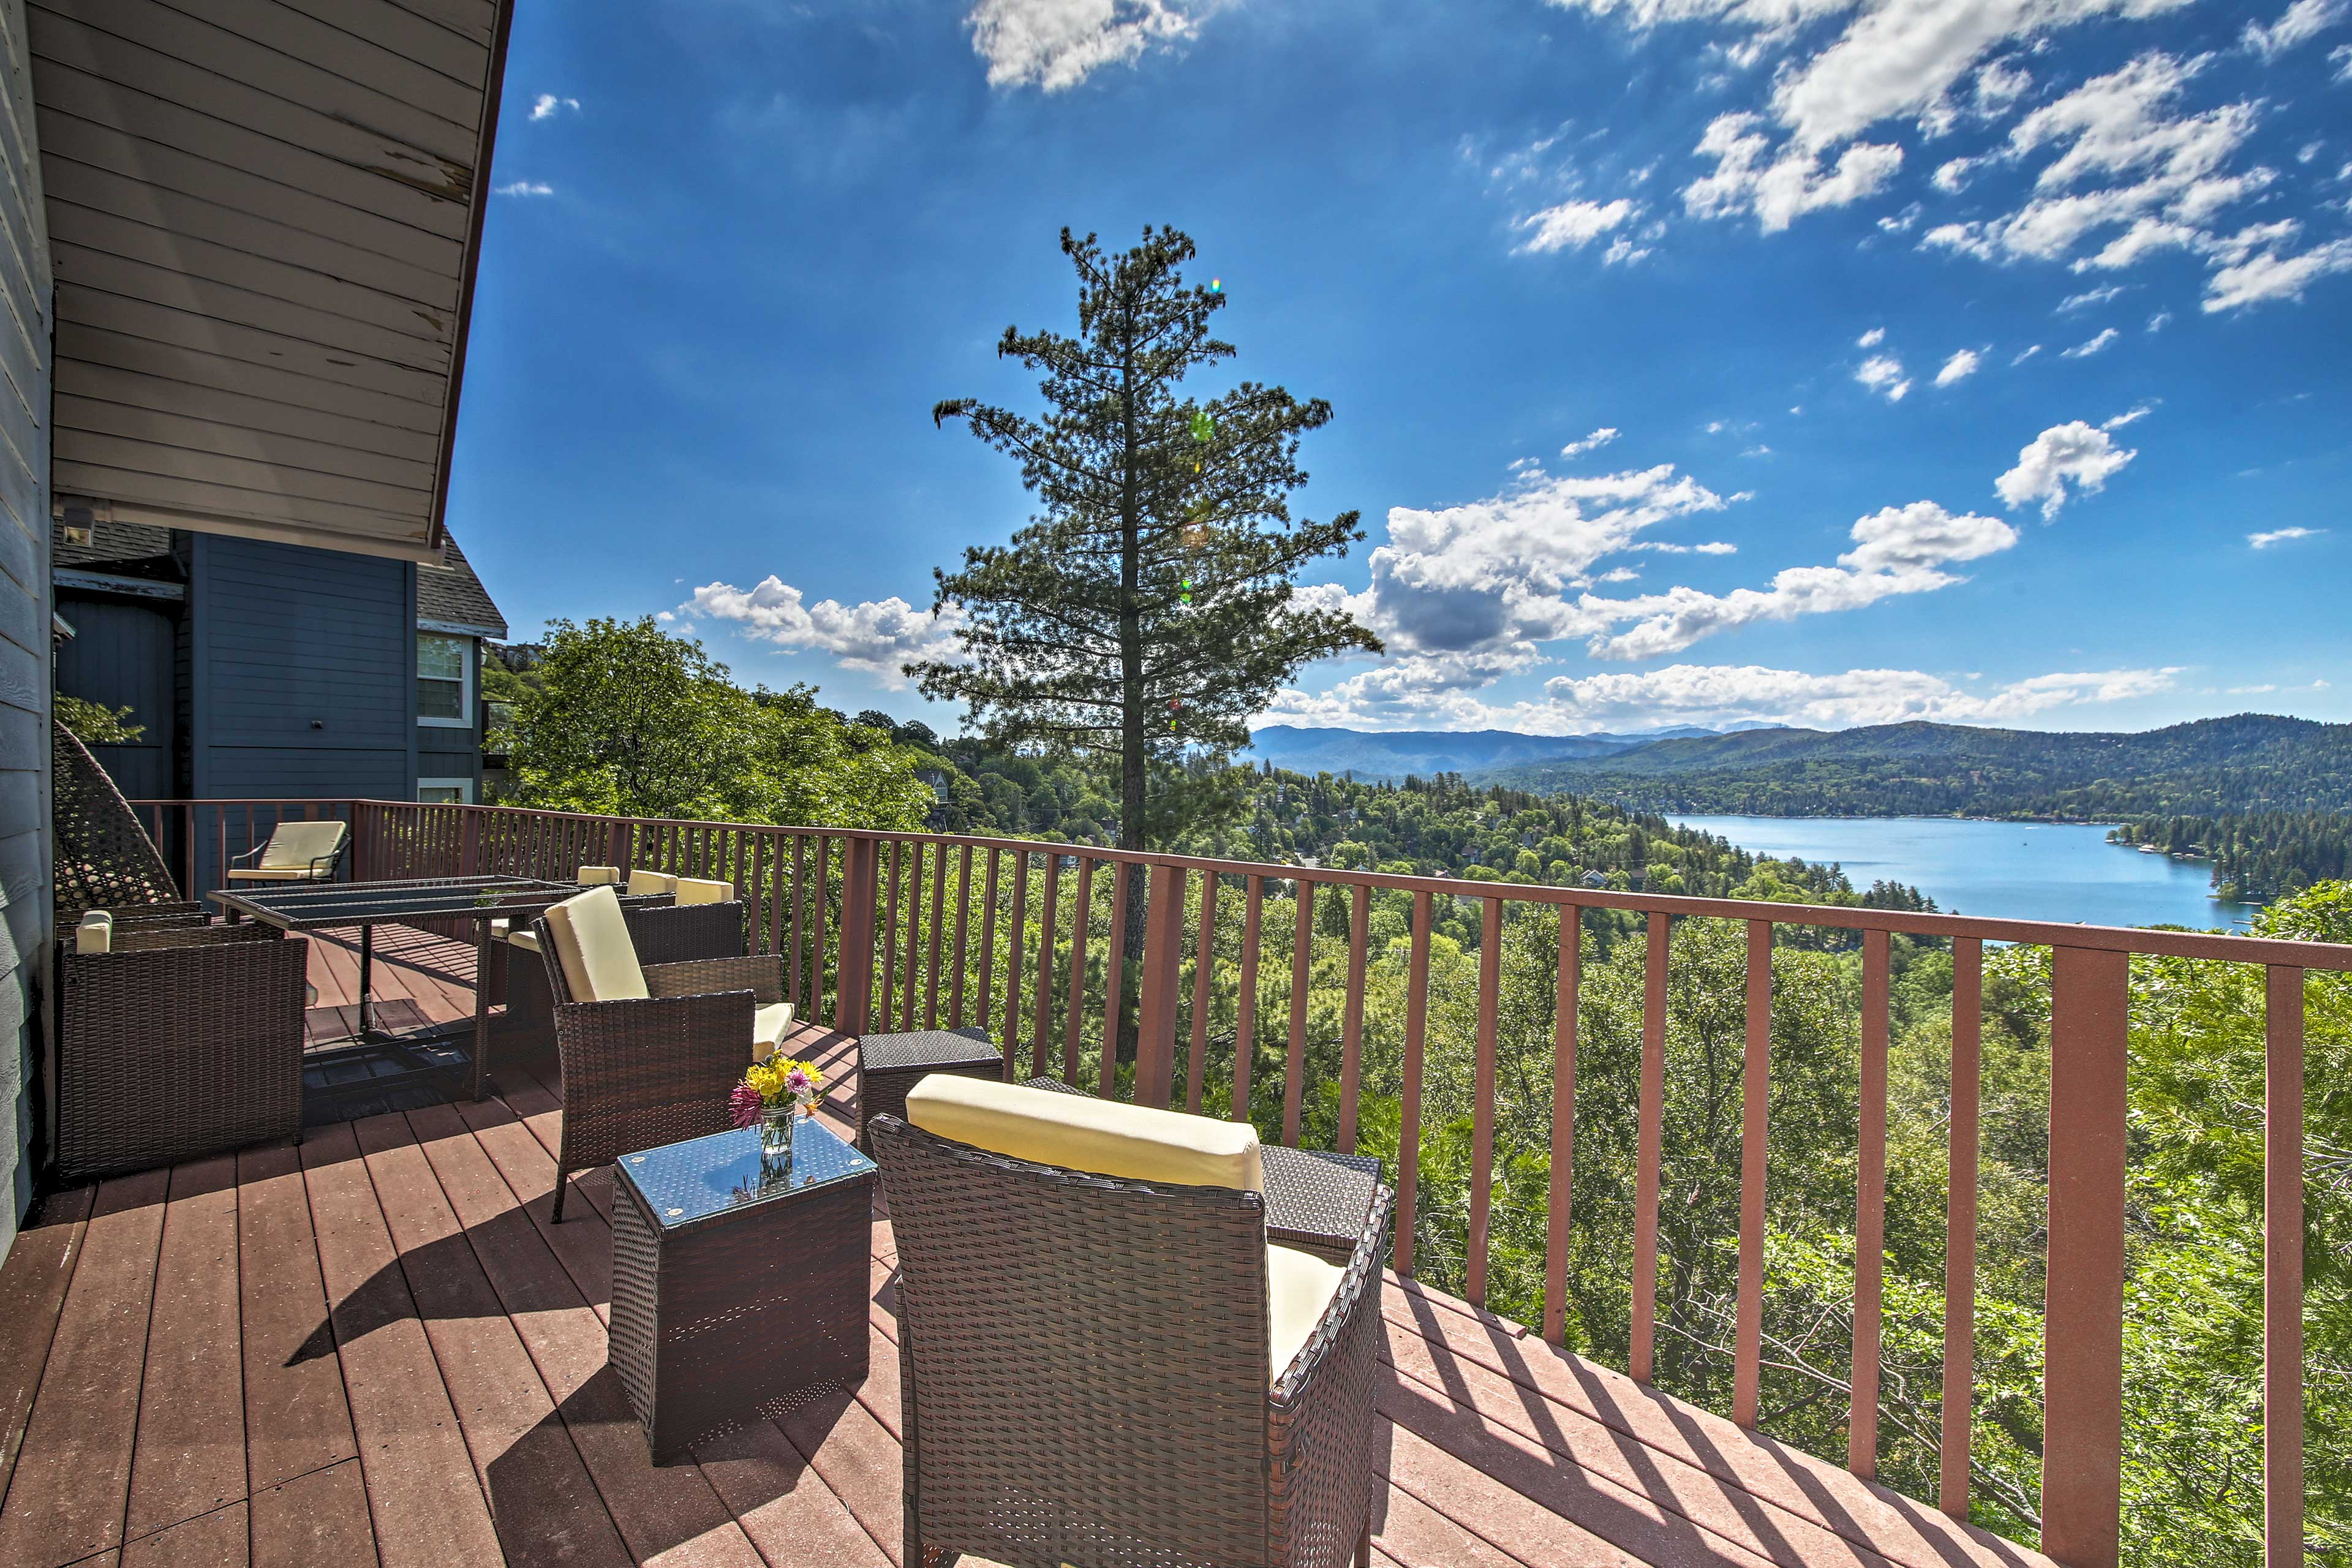 Grab a glass of wine and unwind on the deck.